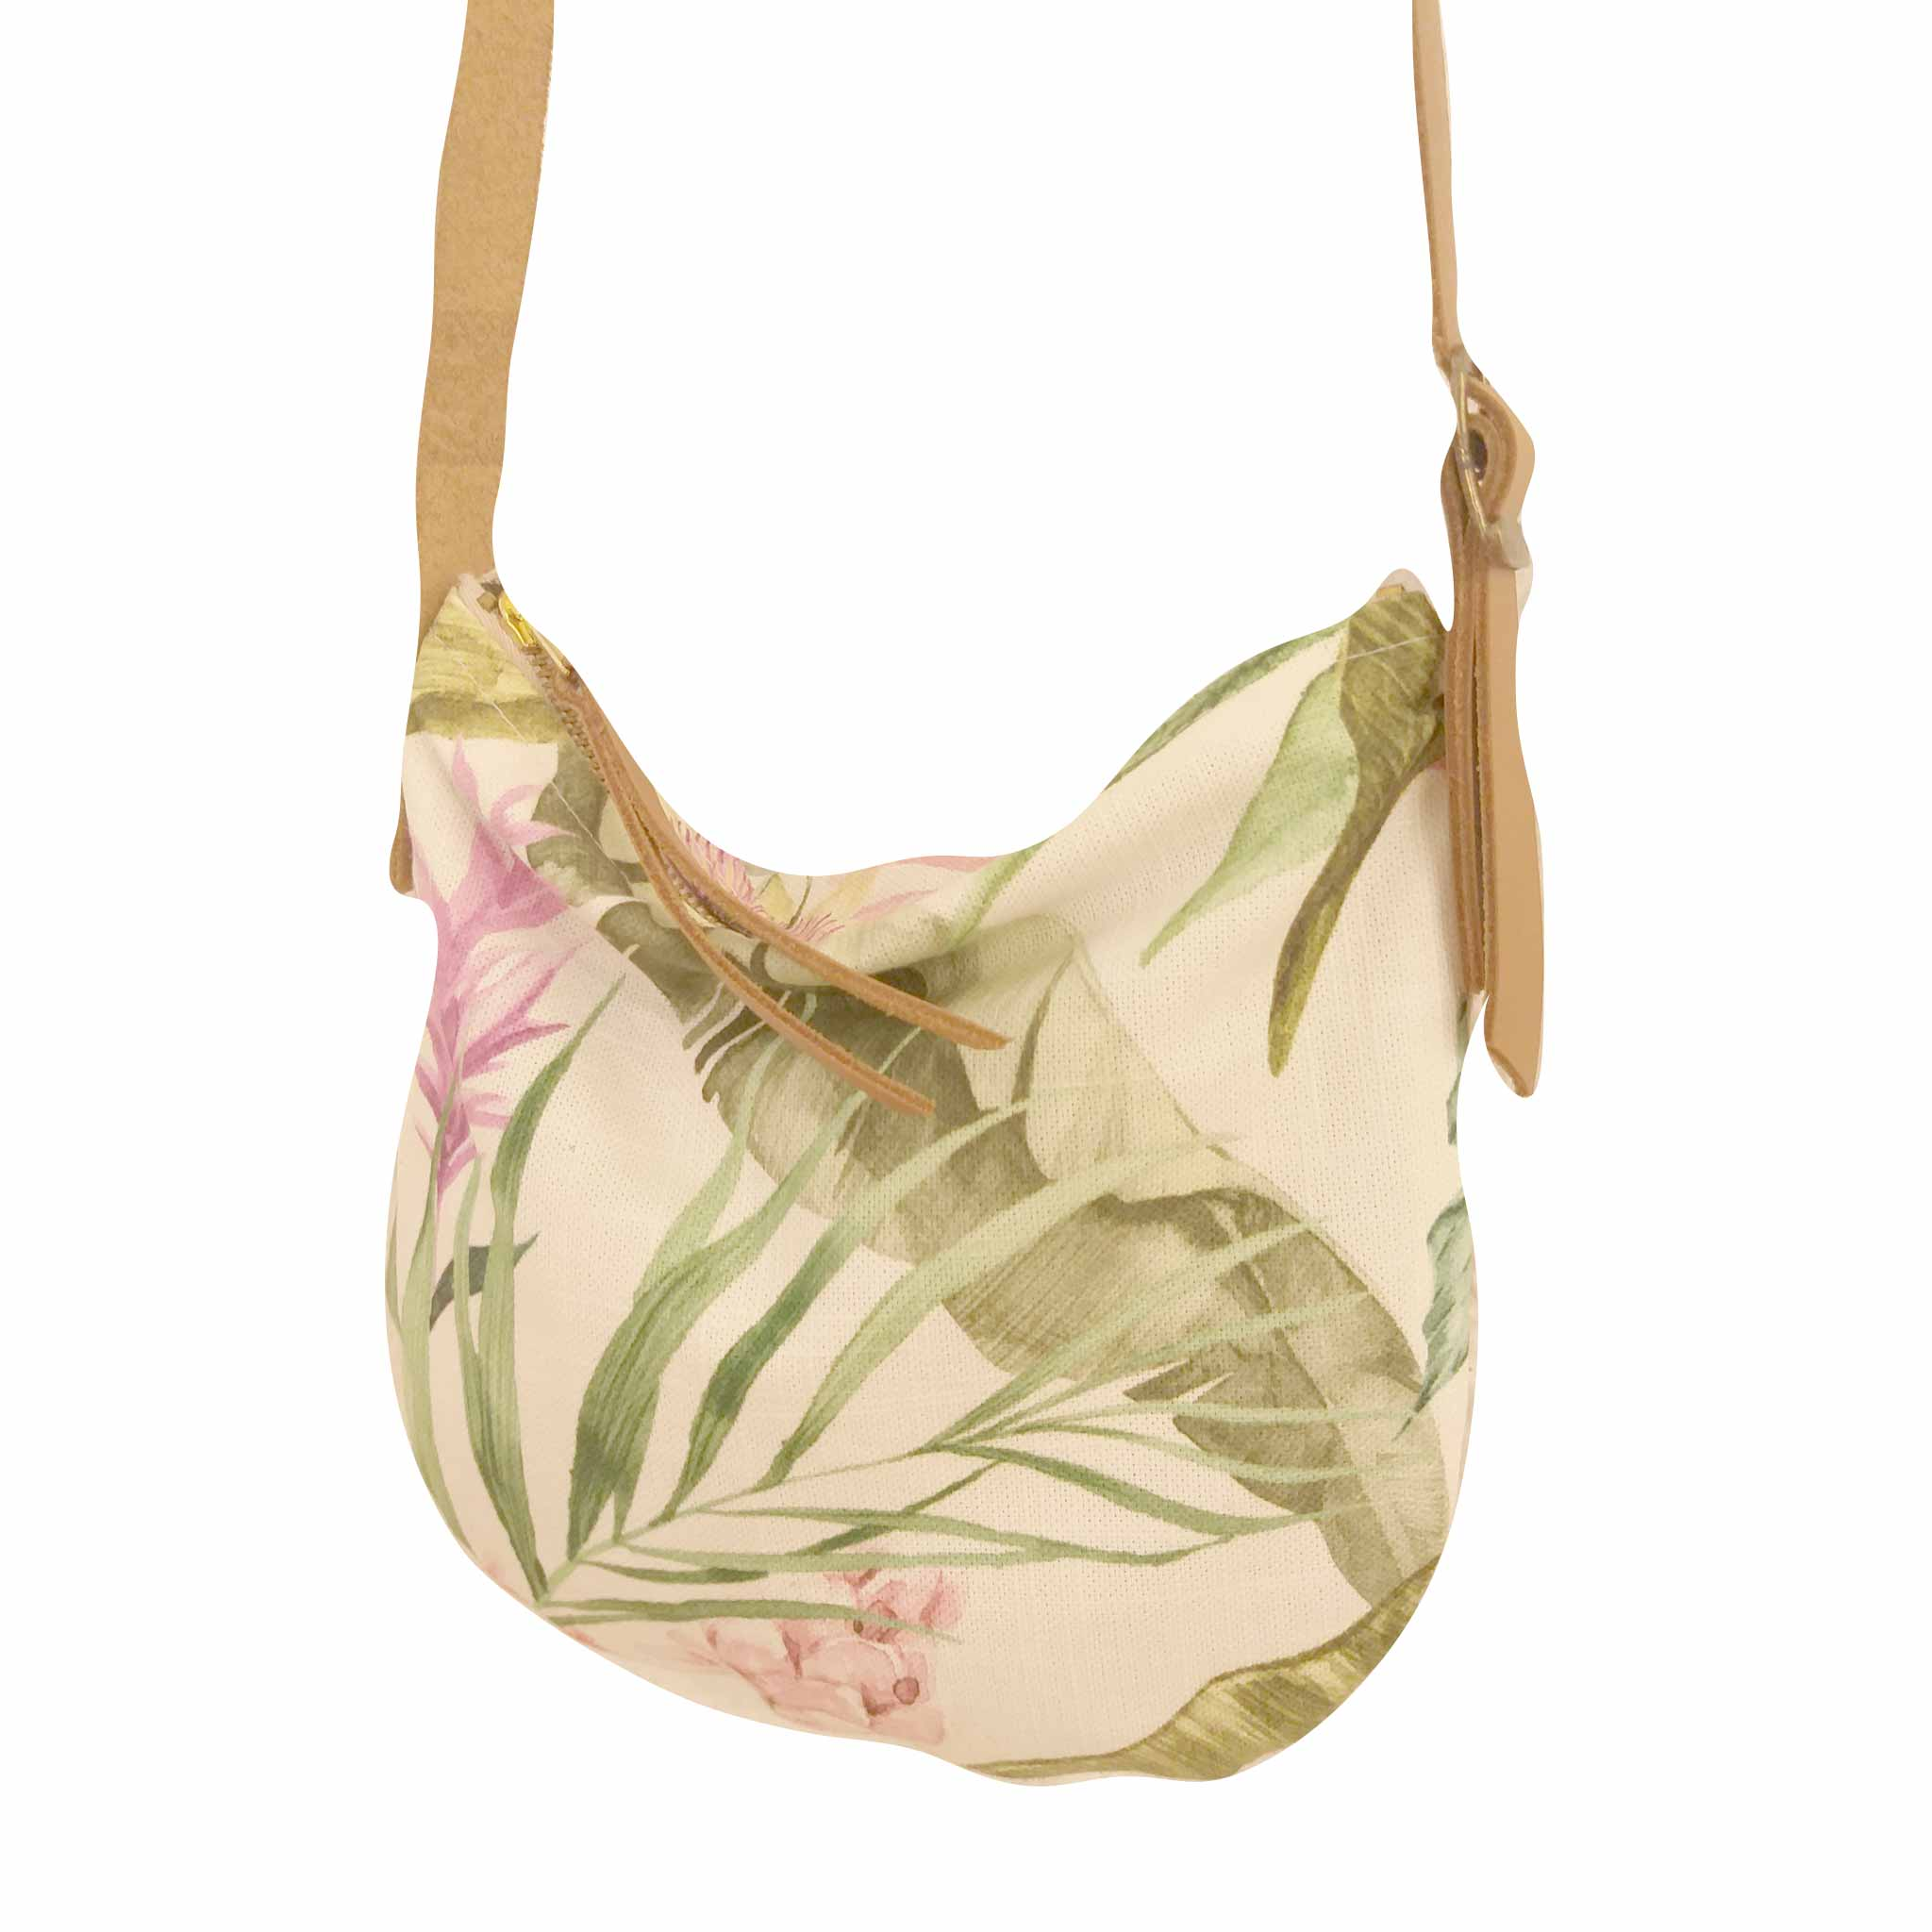 Fabric Sling Bag - Sangria